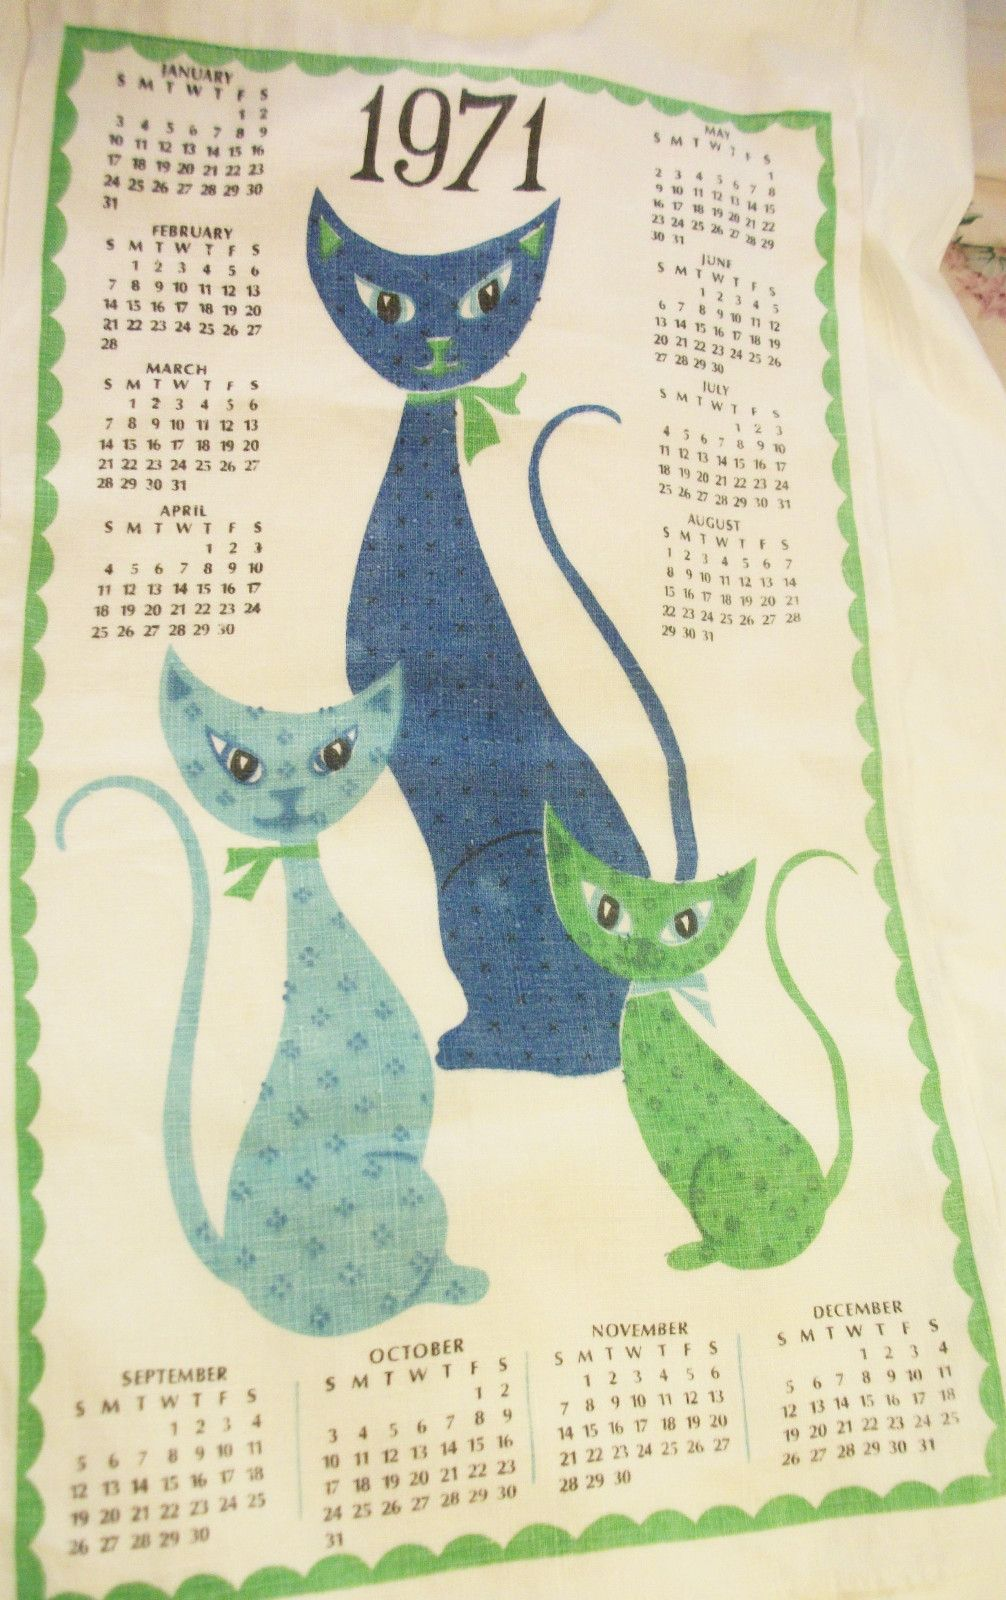 1971- what a flood of memories this brings back. Mom and Grandmom had this towel.